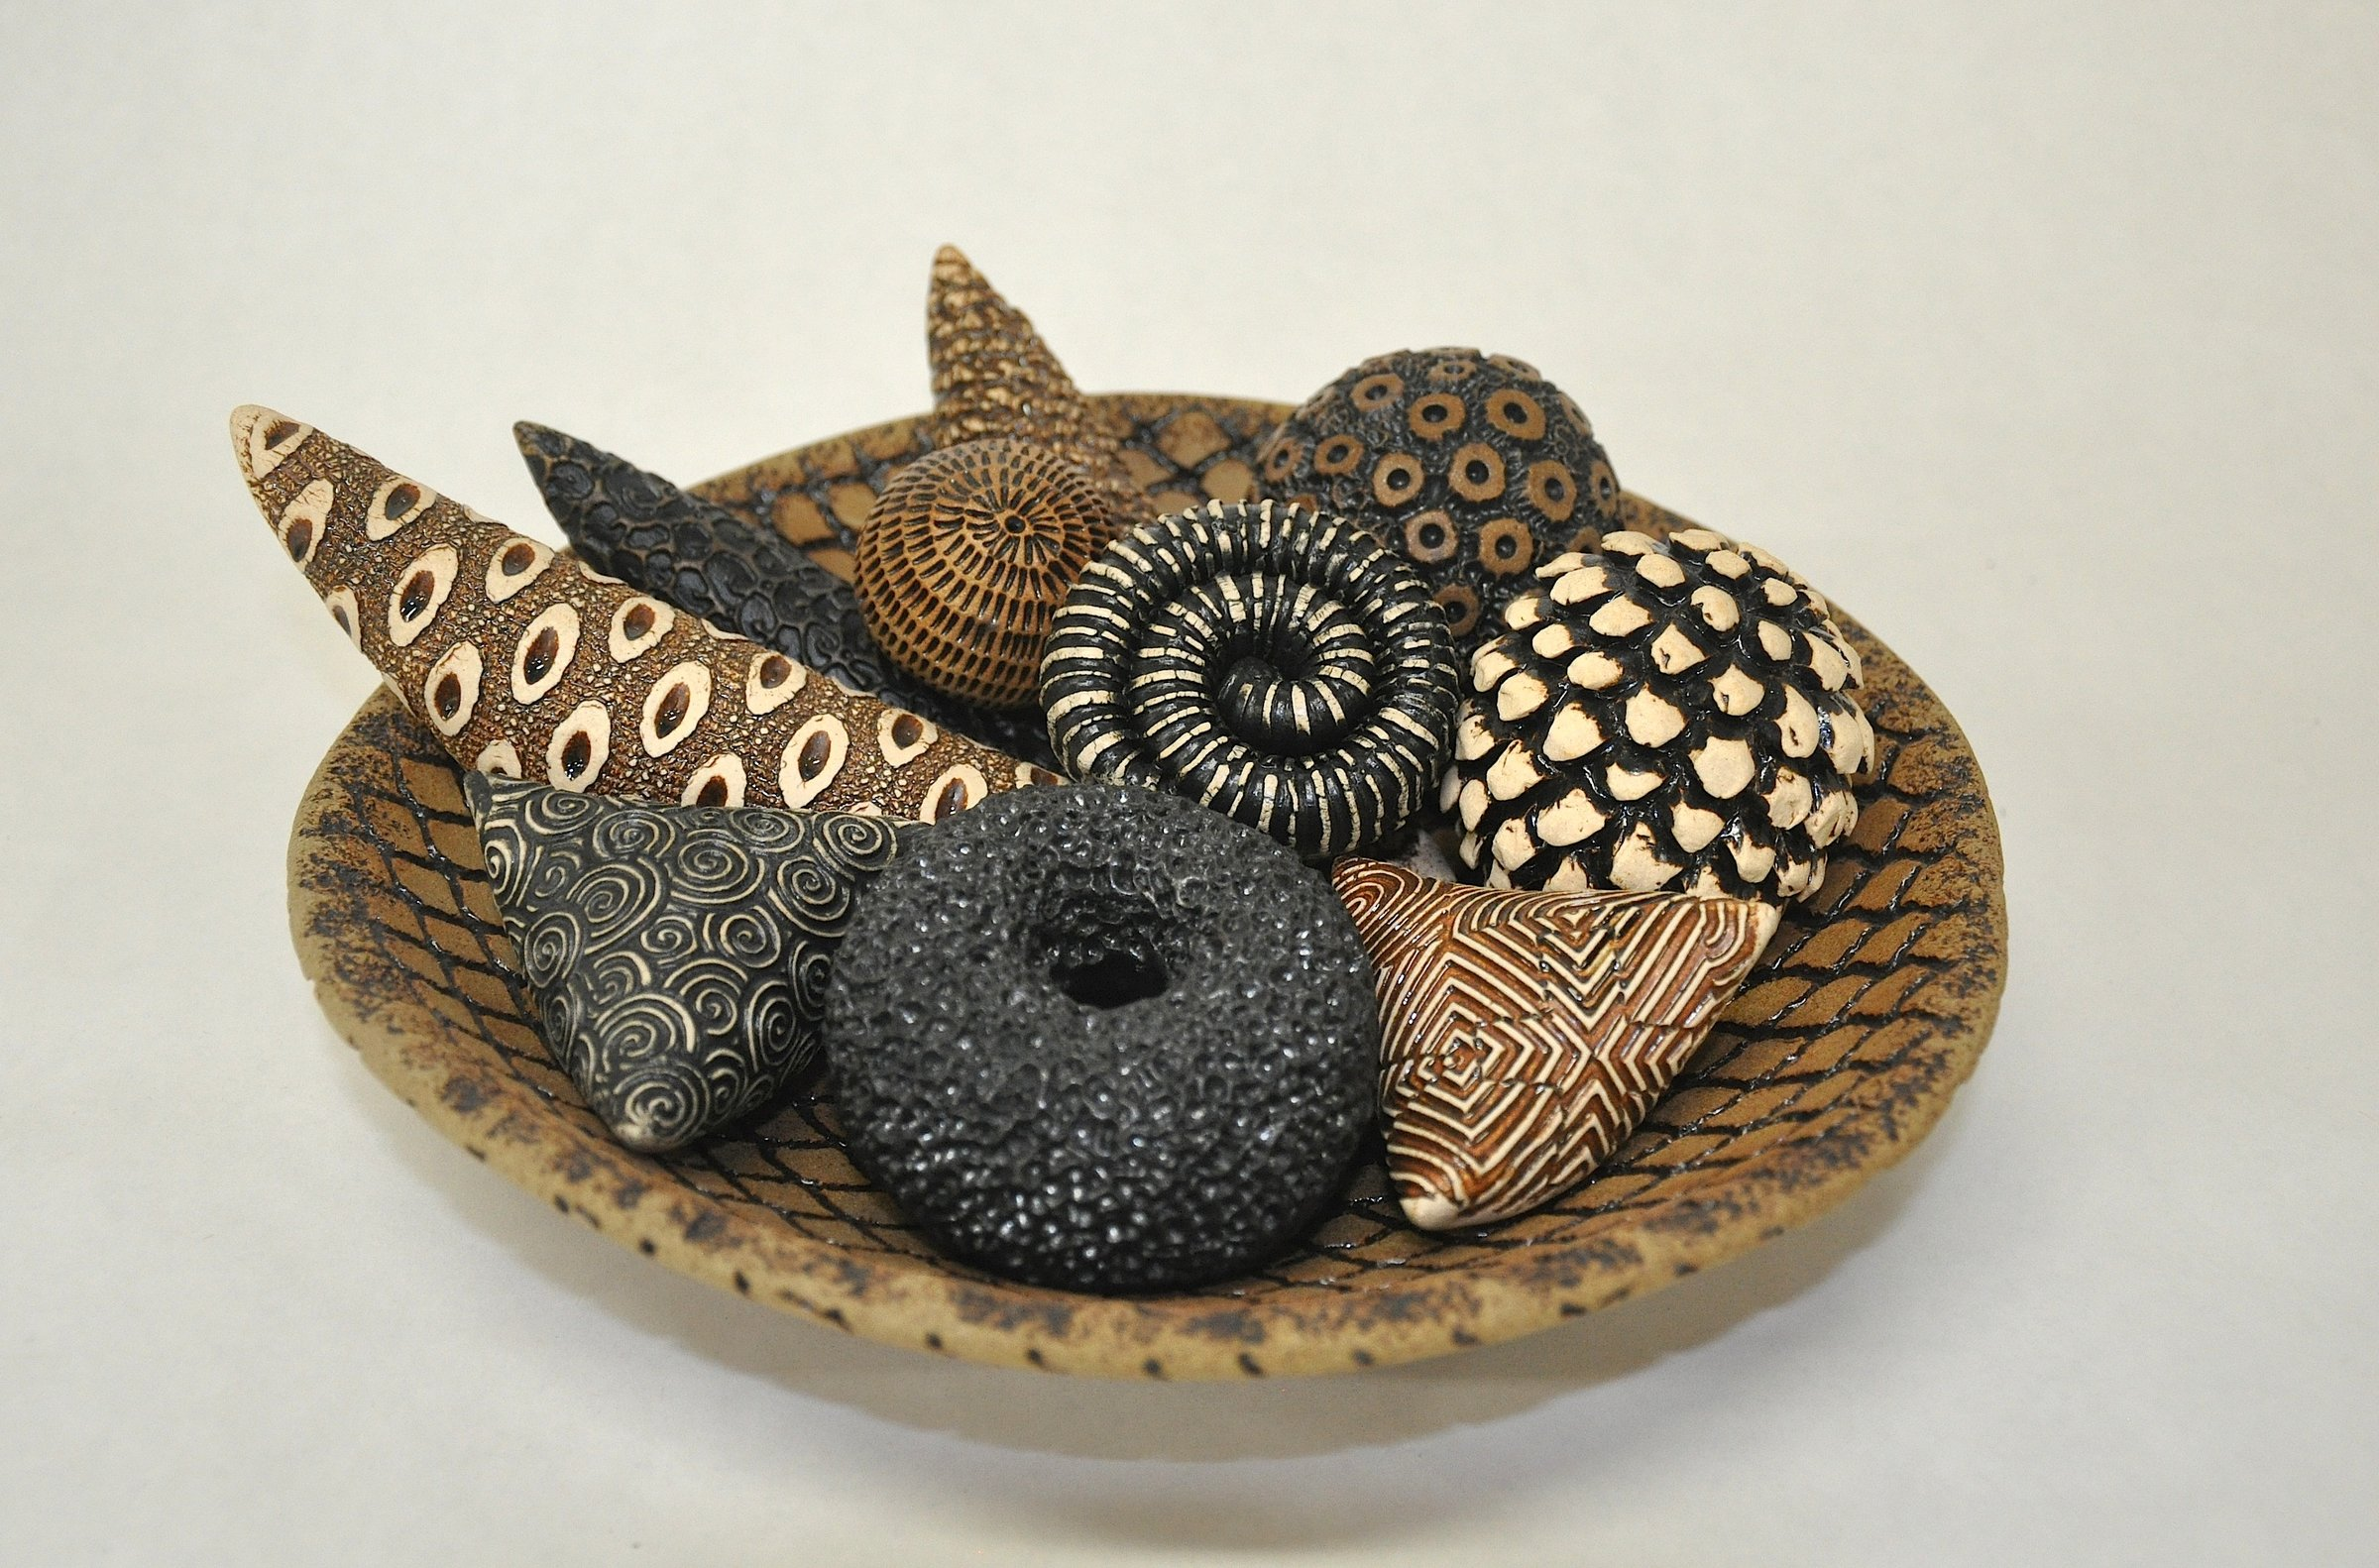 Earth Toned Bowl and Rattles by Kelly Jean Ohl (Ceramic Sculpture ...